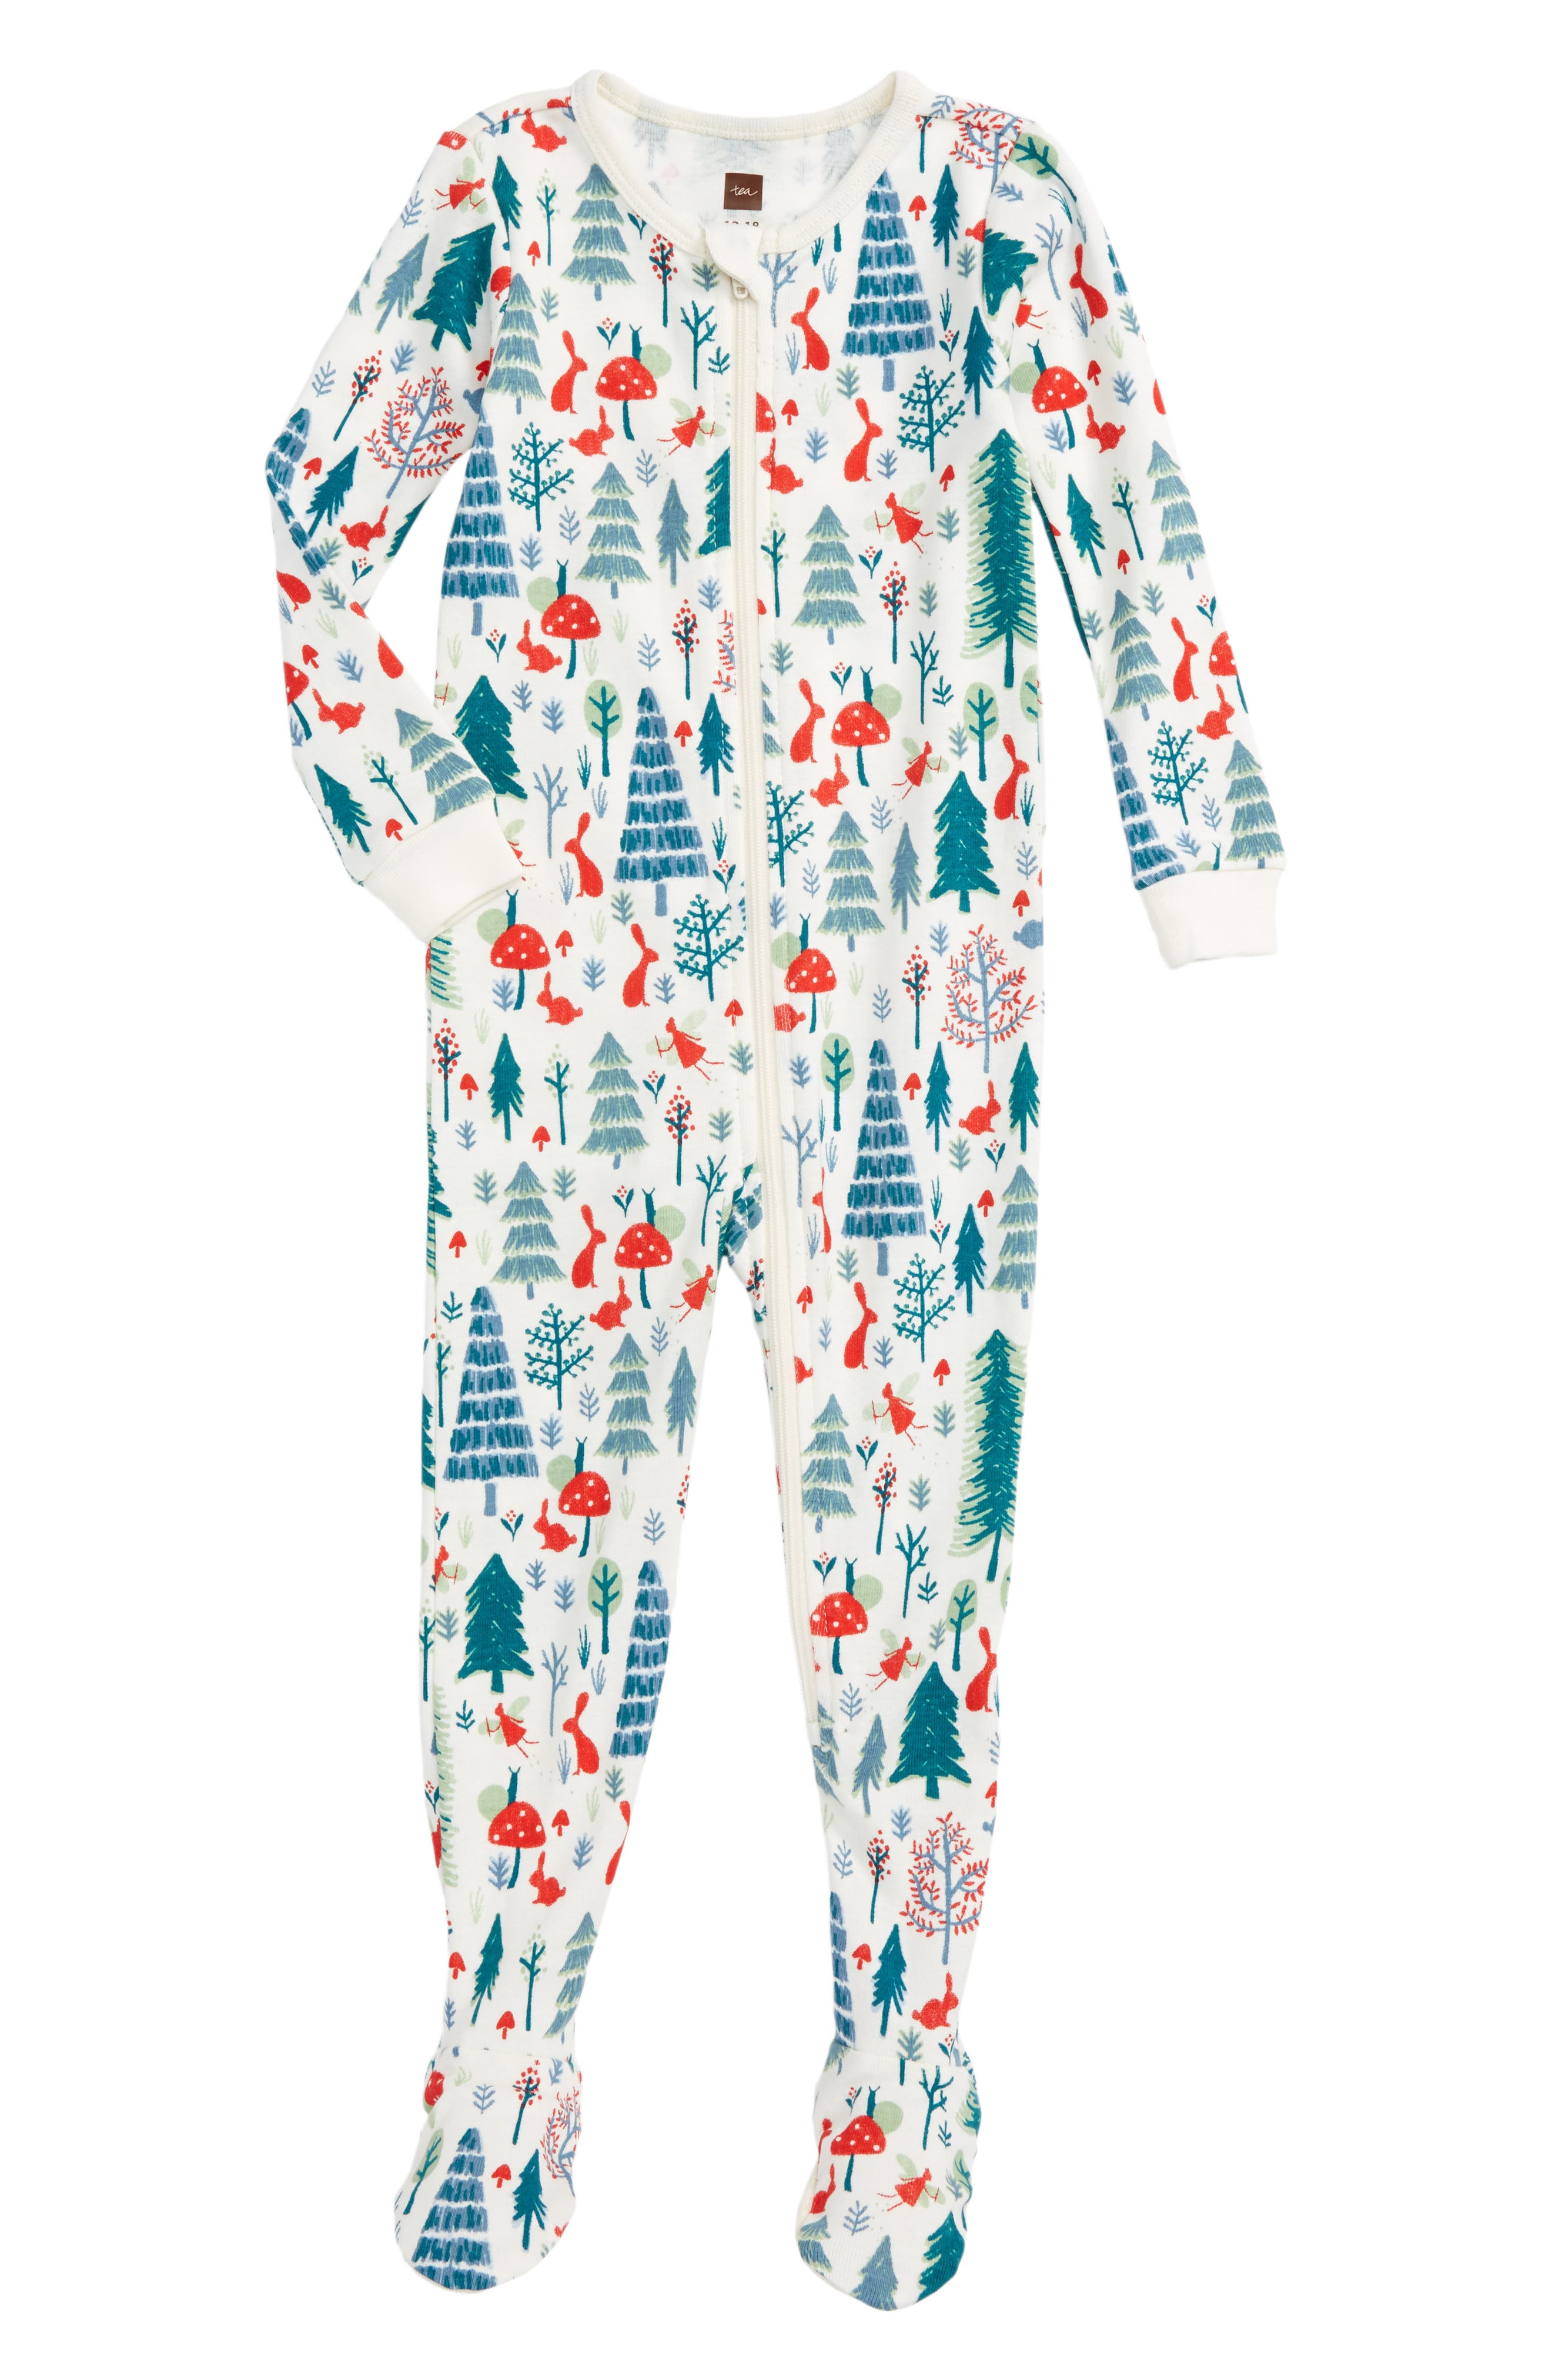 Main Image - Tea Collection Maeve Fitted One-Piece Pajamas (Baby Girls)